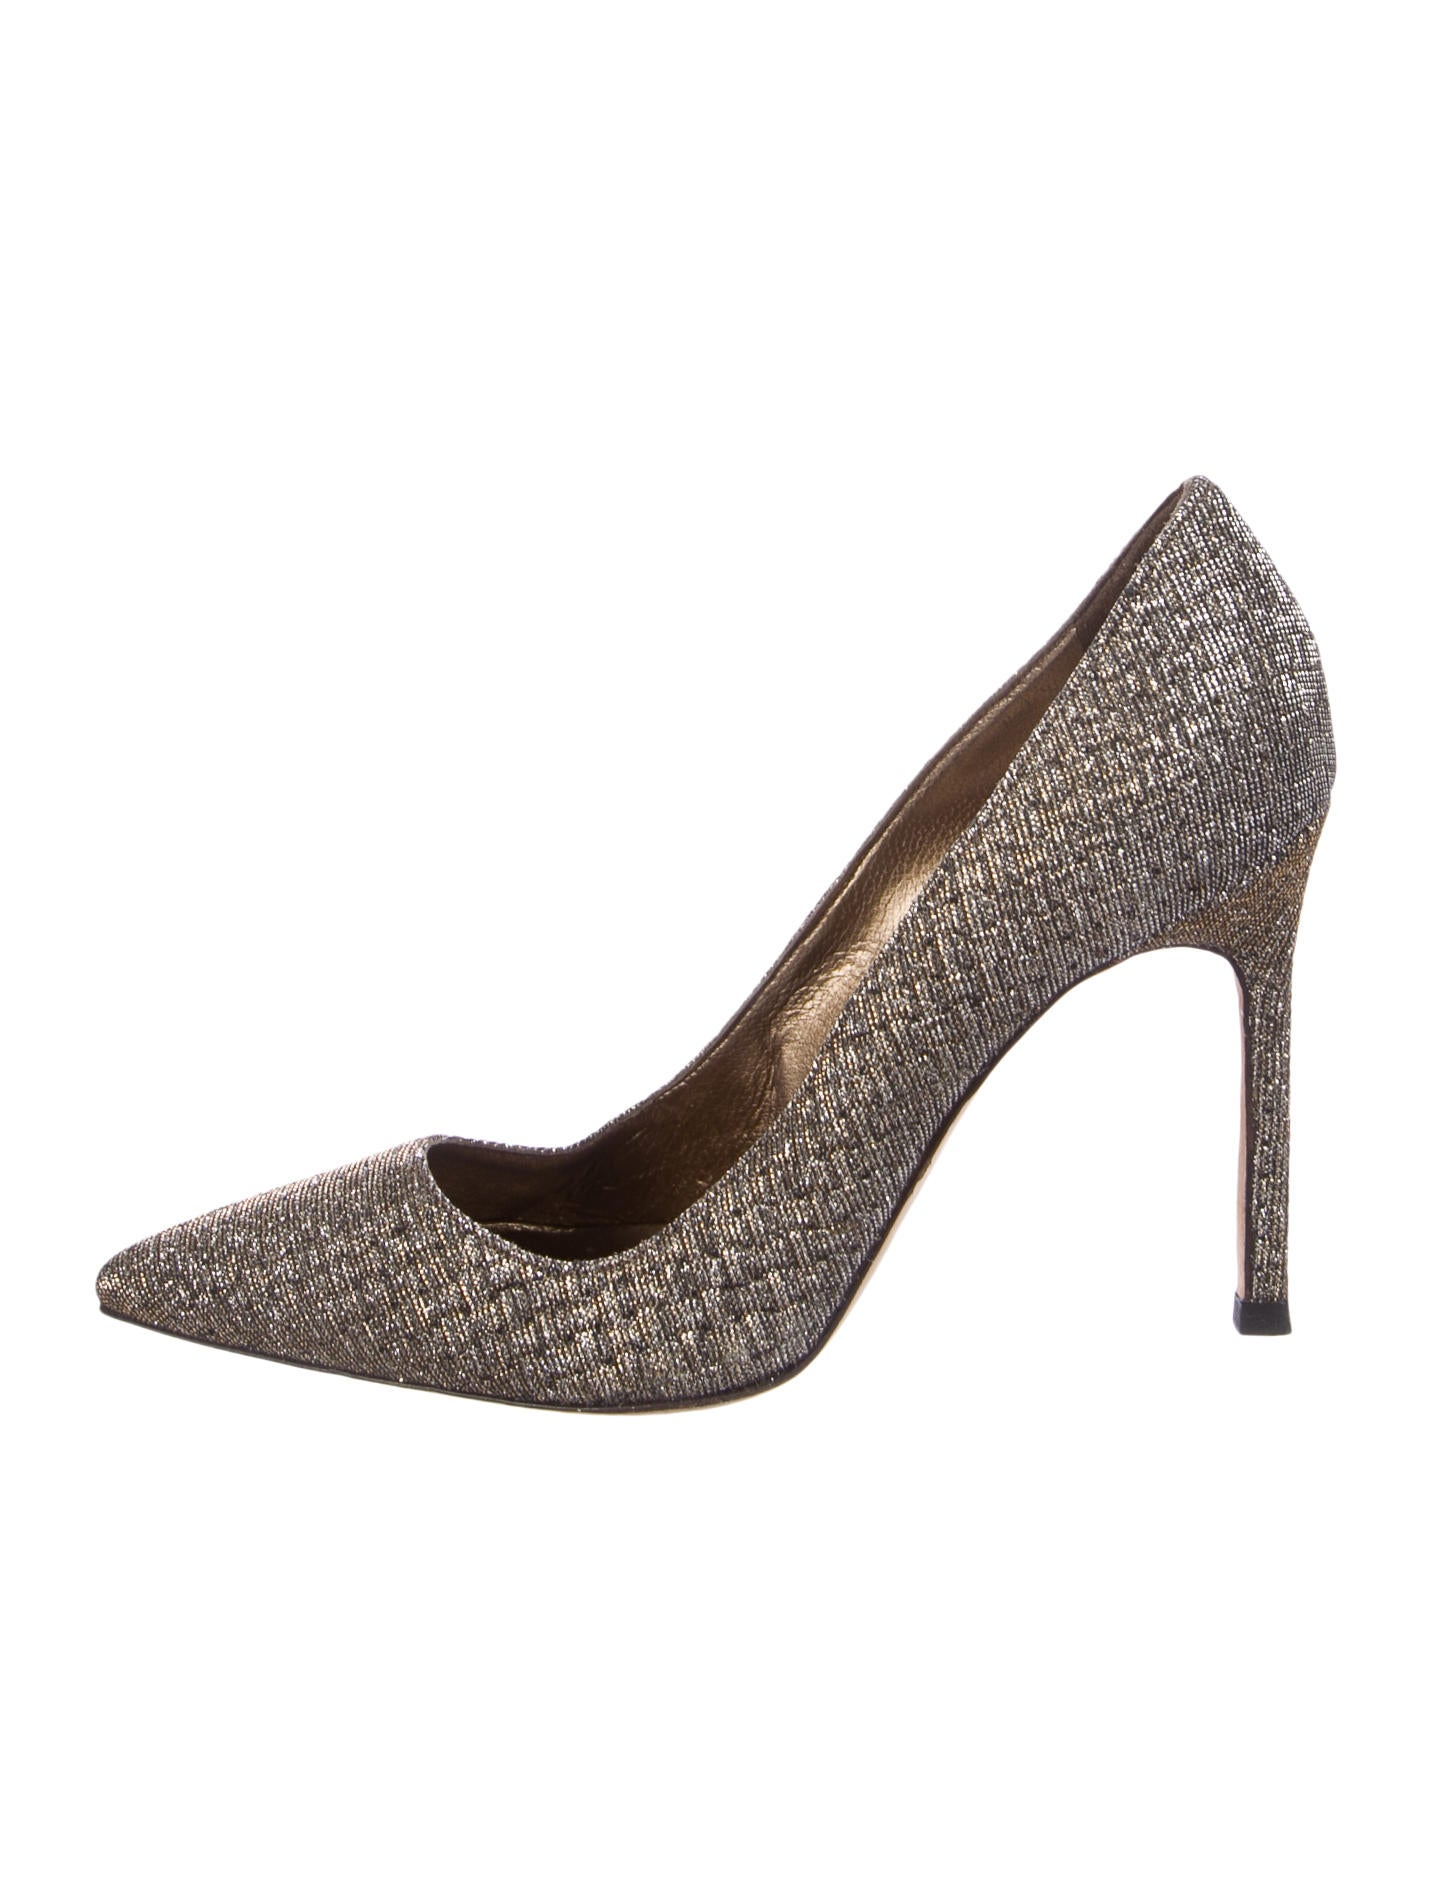 Manolo Blahnik Woven BB Pumps discount authentic online clearance top quality discount new styles edo2y